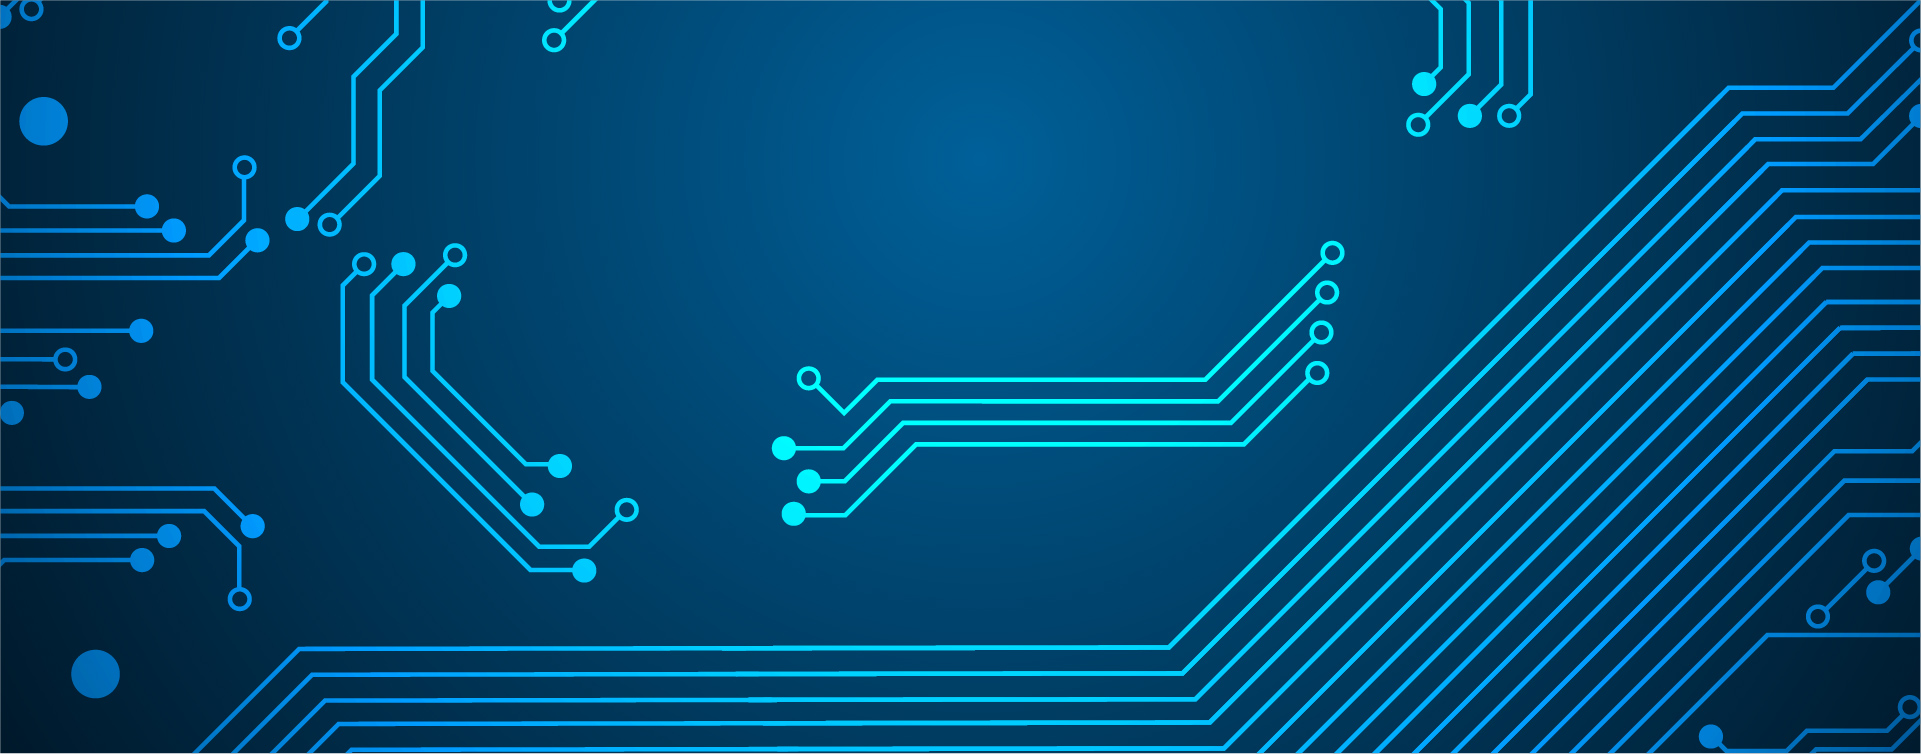 Blue Circuit Board Background Image For Free Photo Of Abstract Vector With High Tech Download